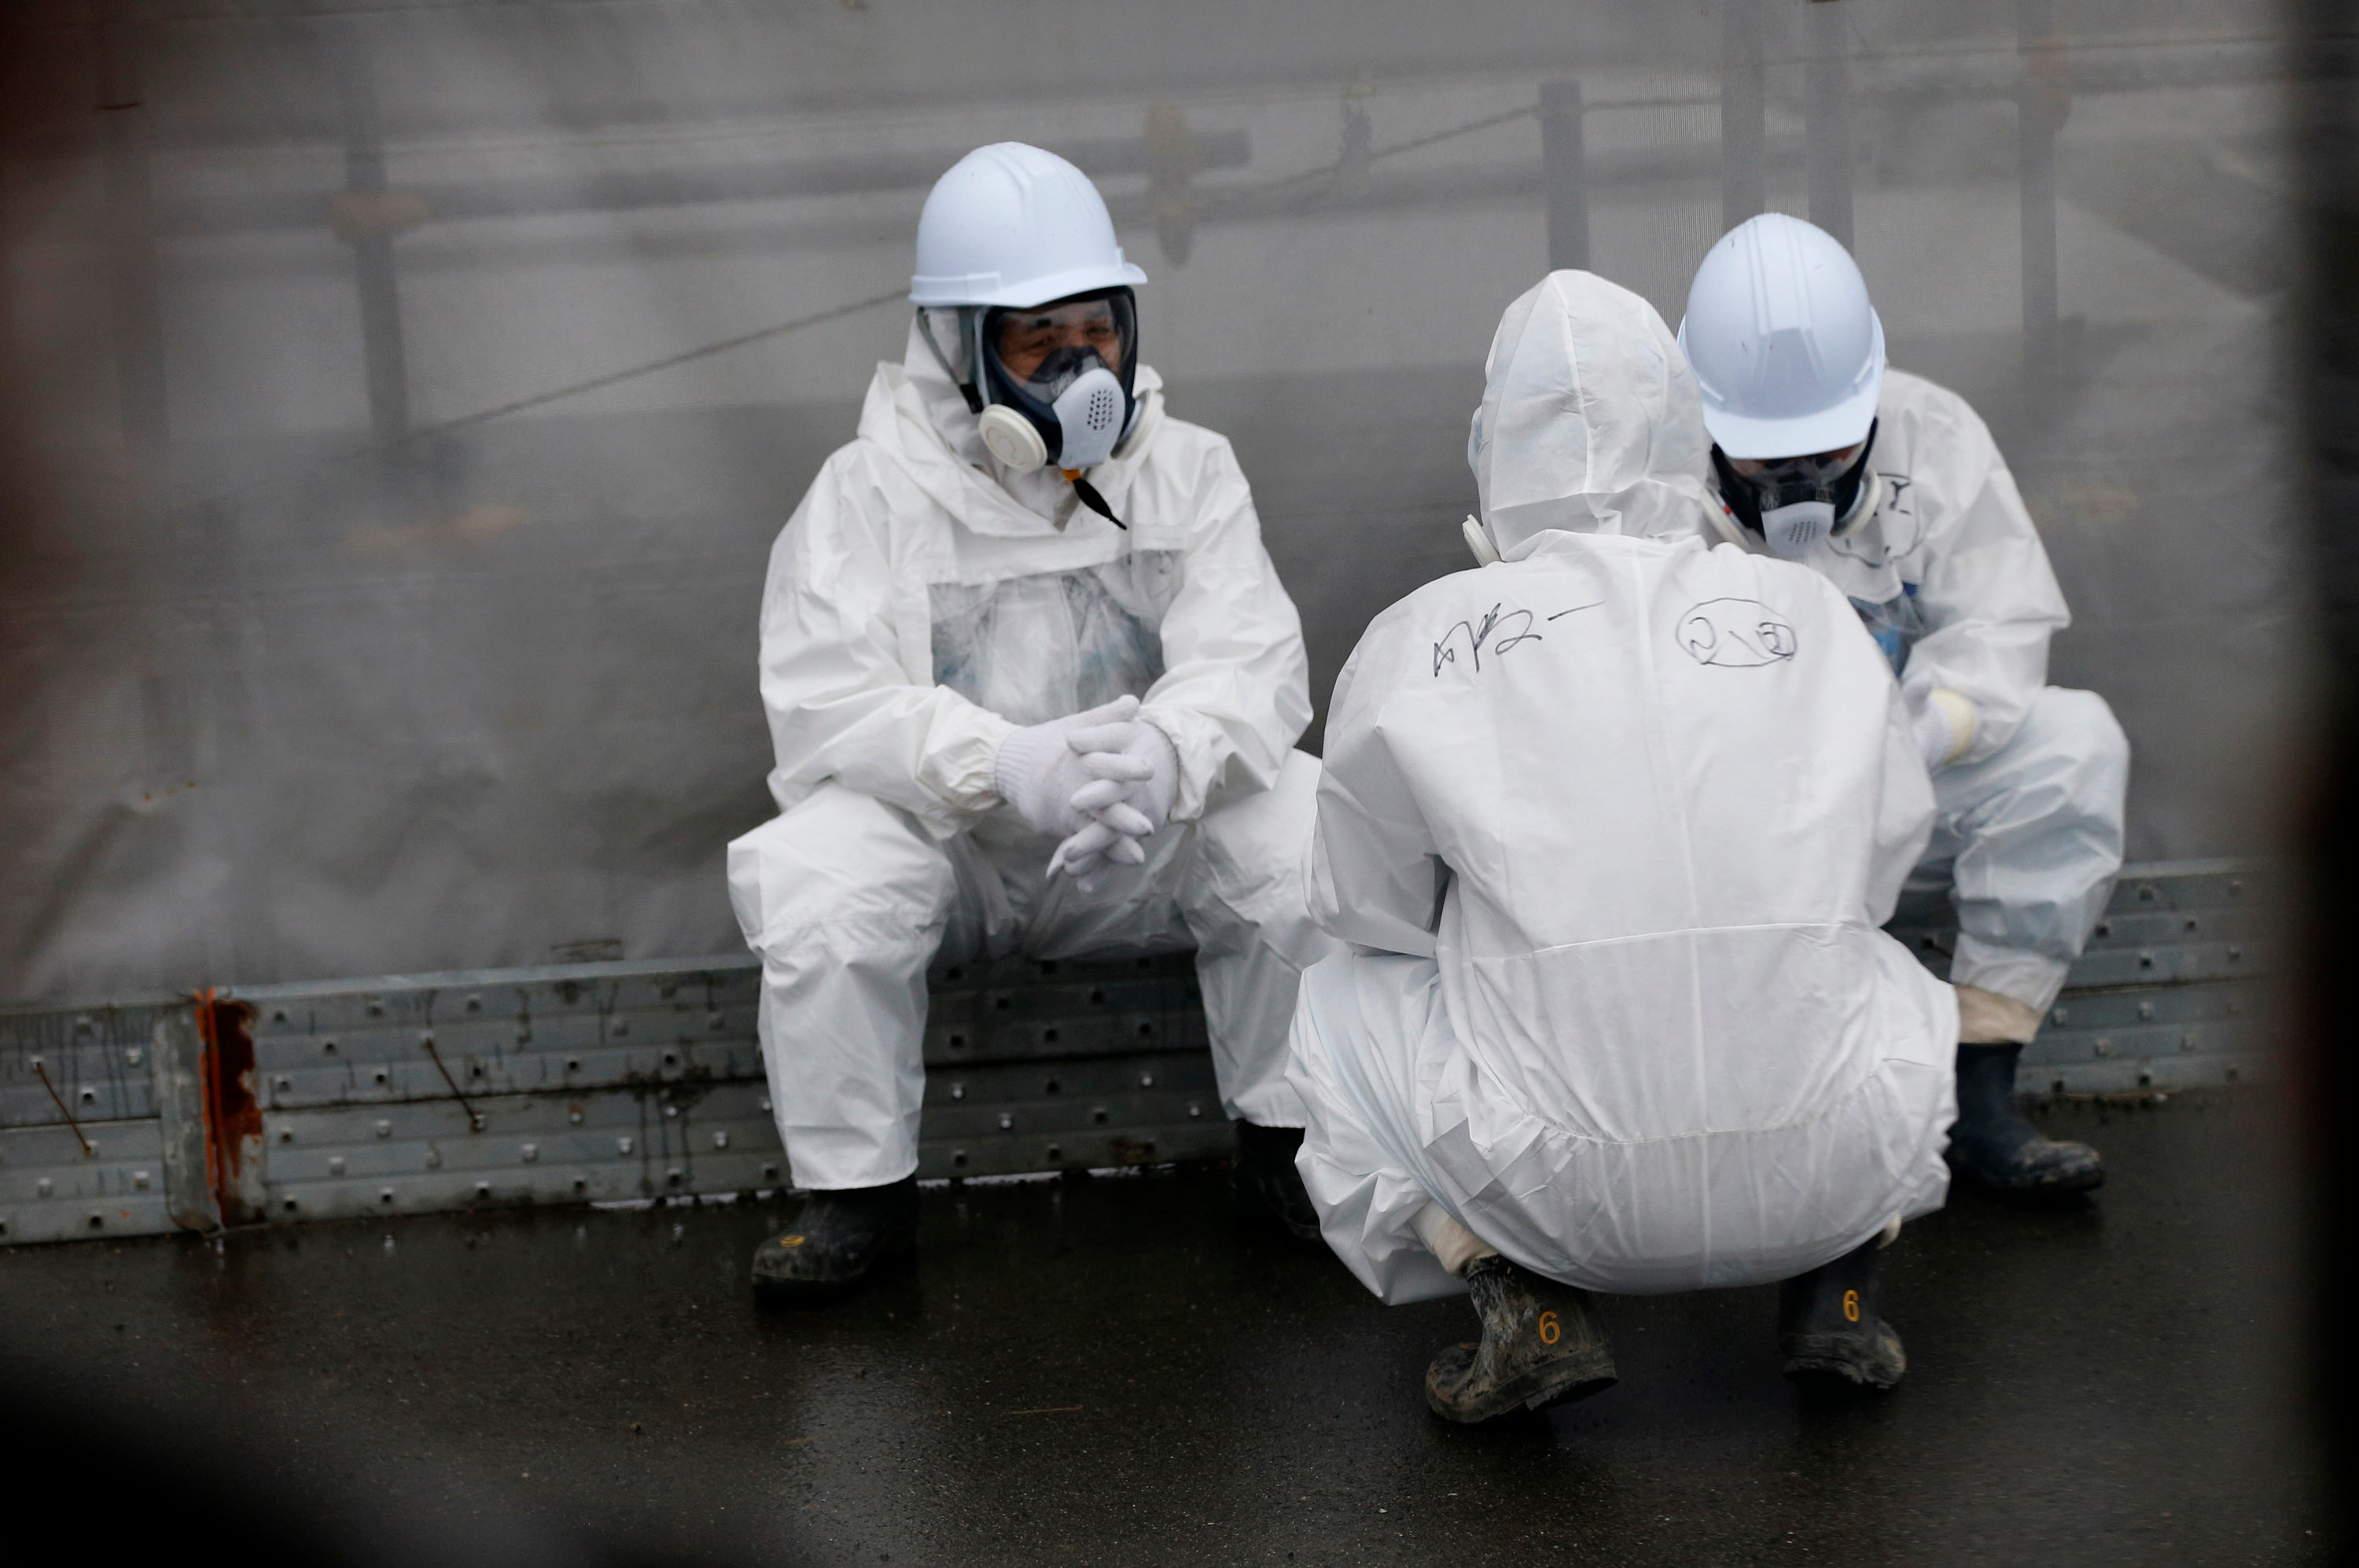 The Latest Fukushima Leak Was Unreported for Almost a Year